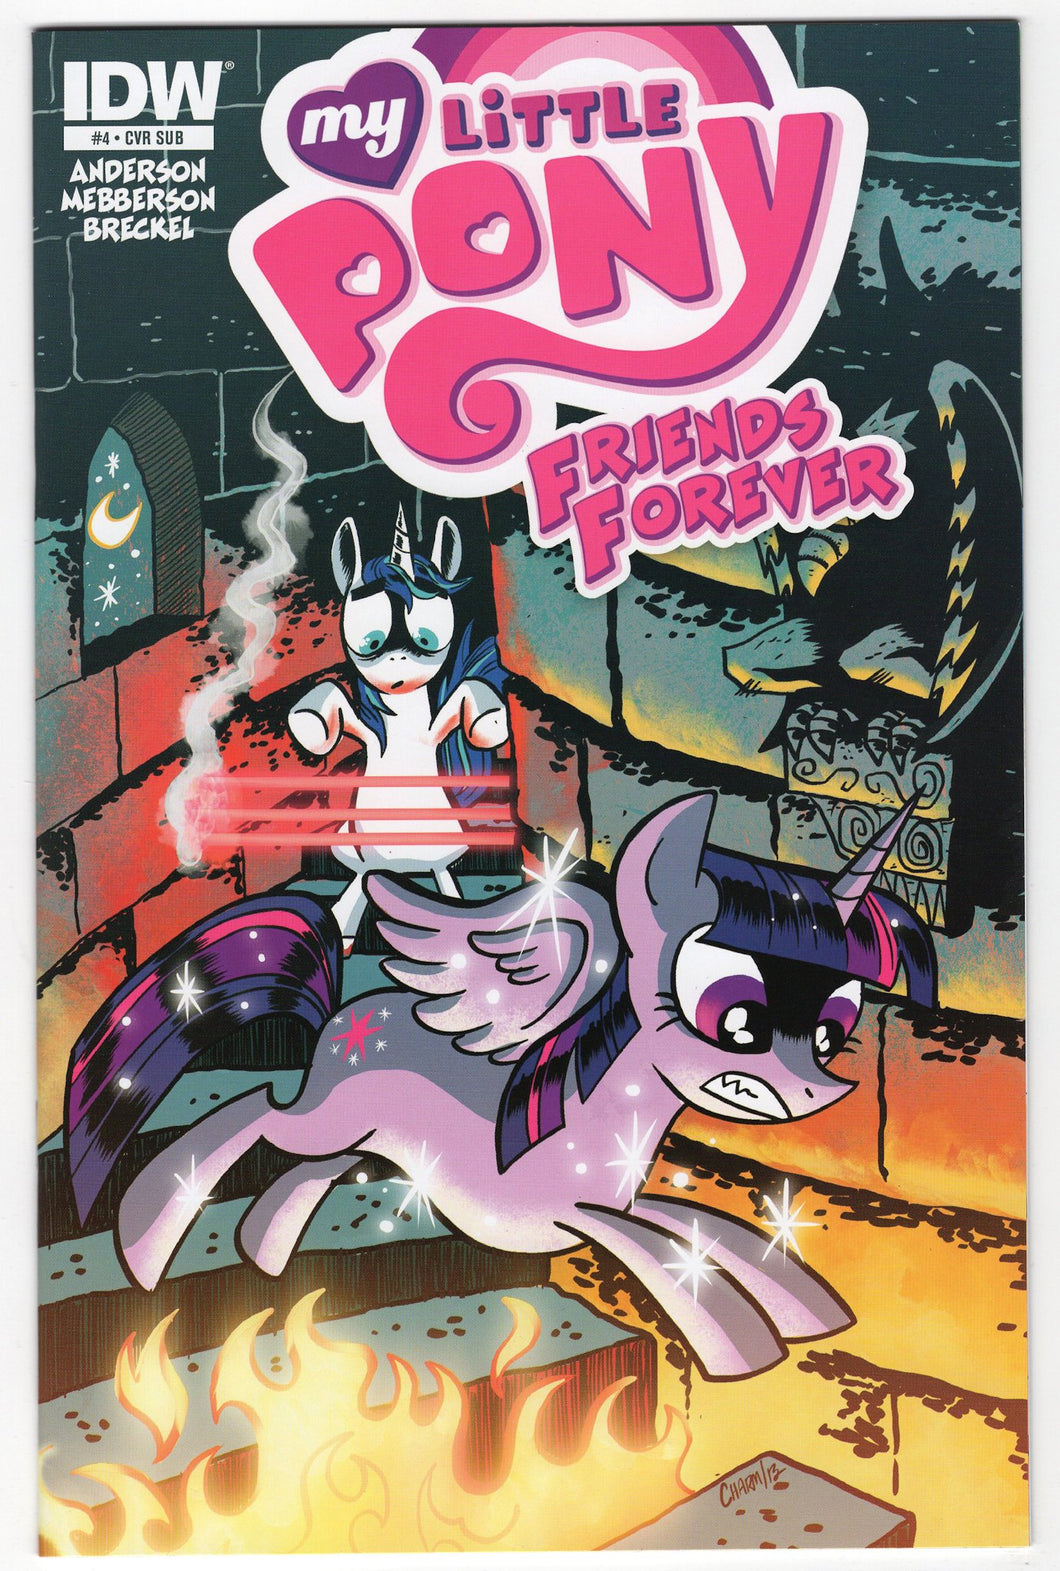 My Little Pony Friends Forever #4 Variant Cover Front